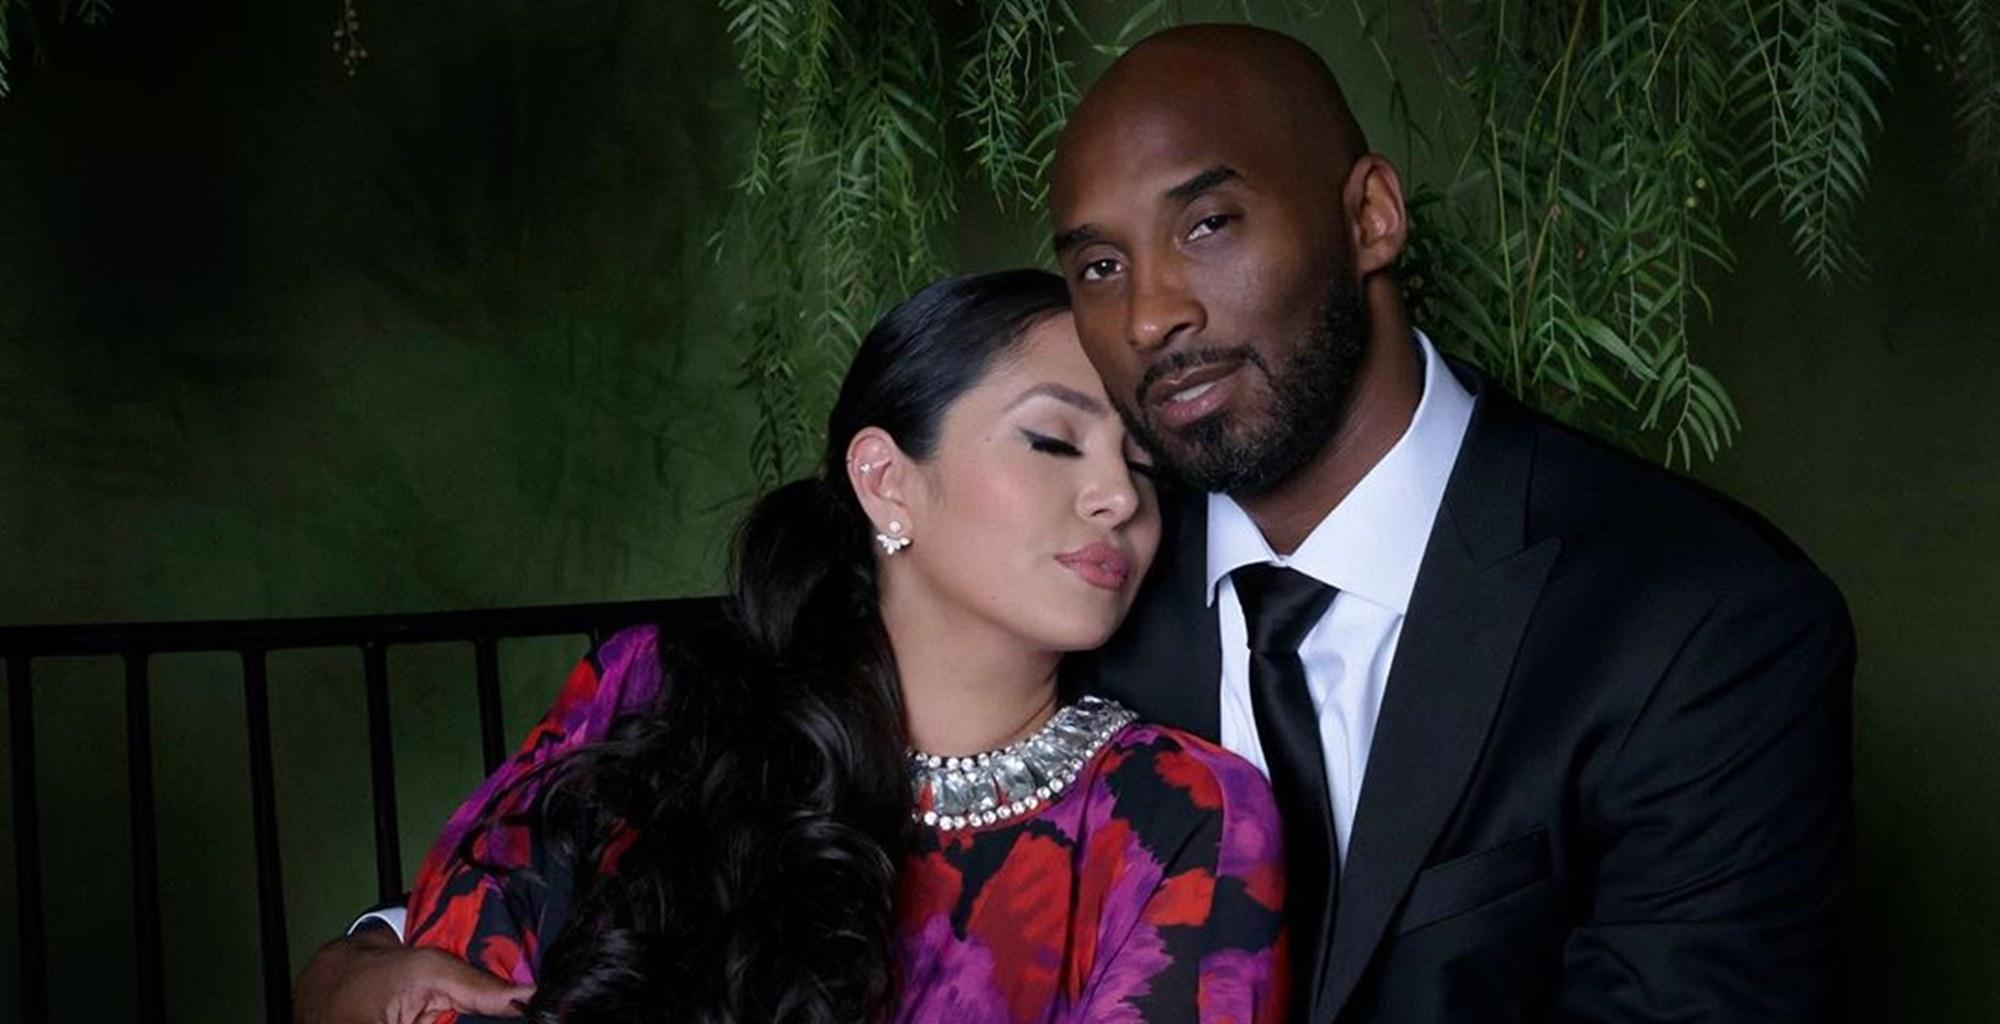 Kobe Bryant's Rep Takes On Erroneous Reports Hurting His Loved Ones